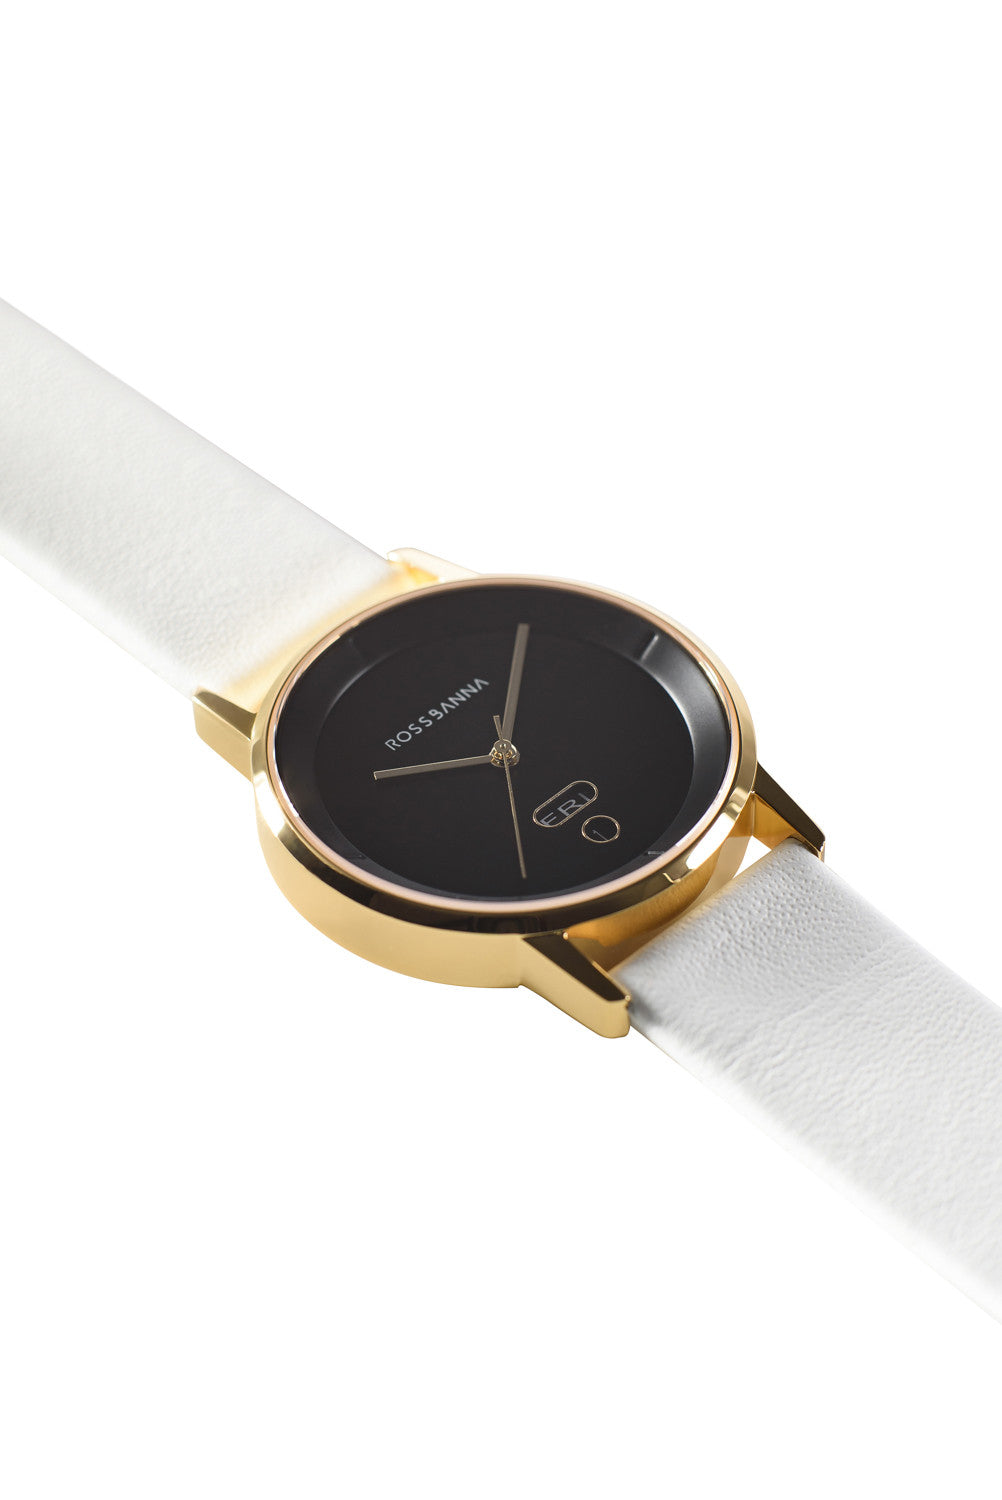 Gold Rossbanna Cornice watch with white strap, minimal, elegant, timeless, unique timepiece 02